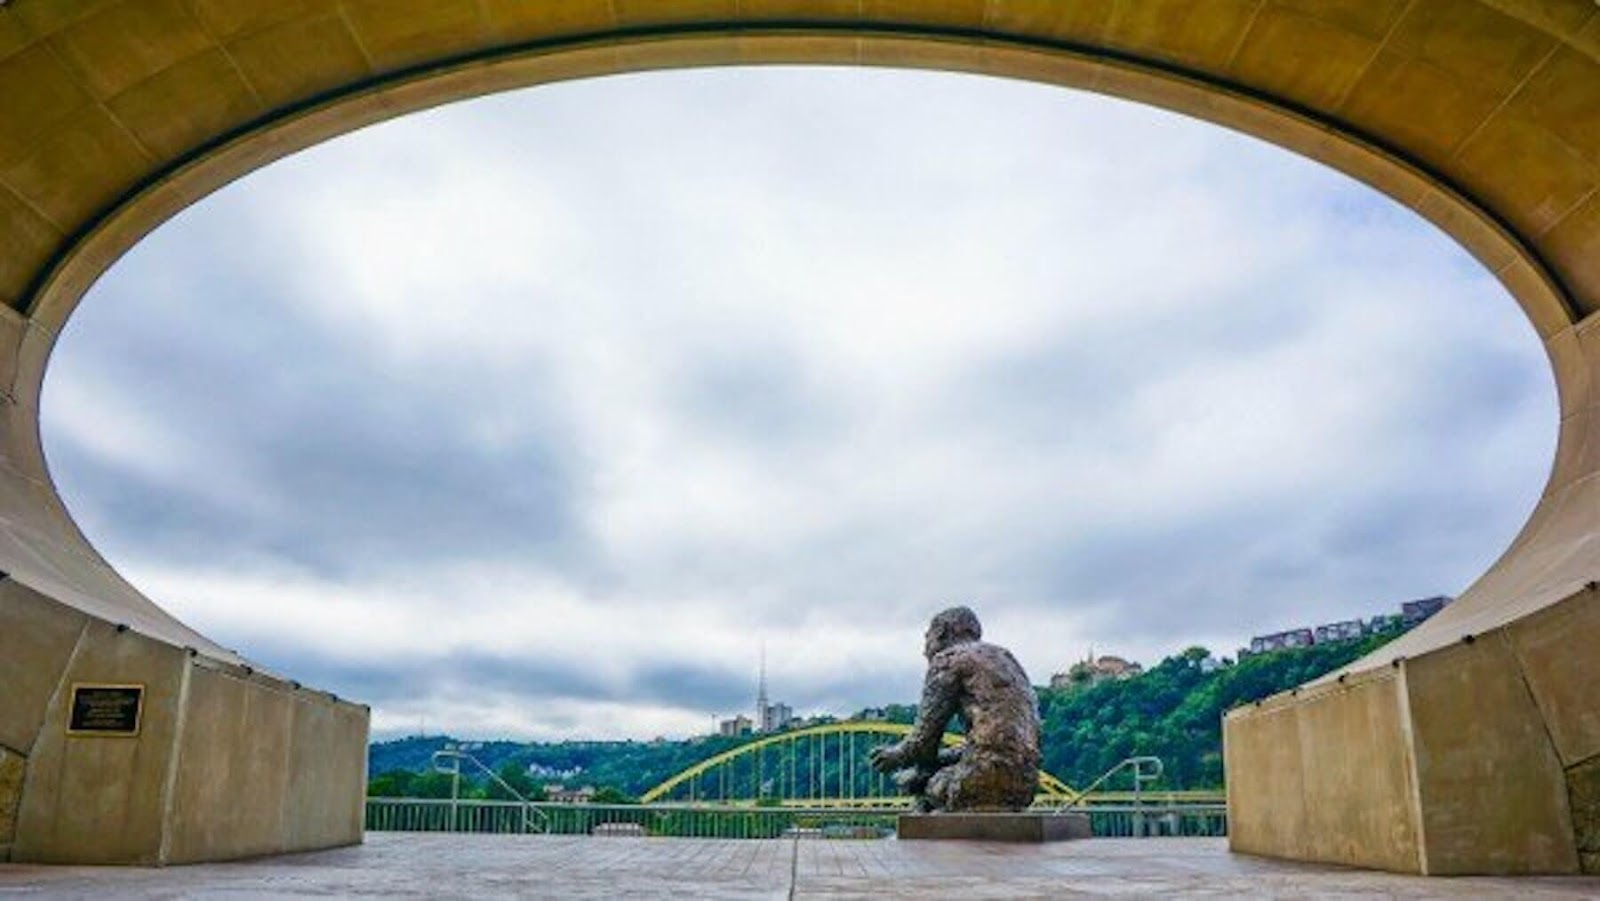 North Shore River Trail in Pittsburgh